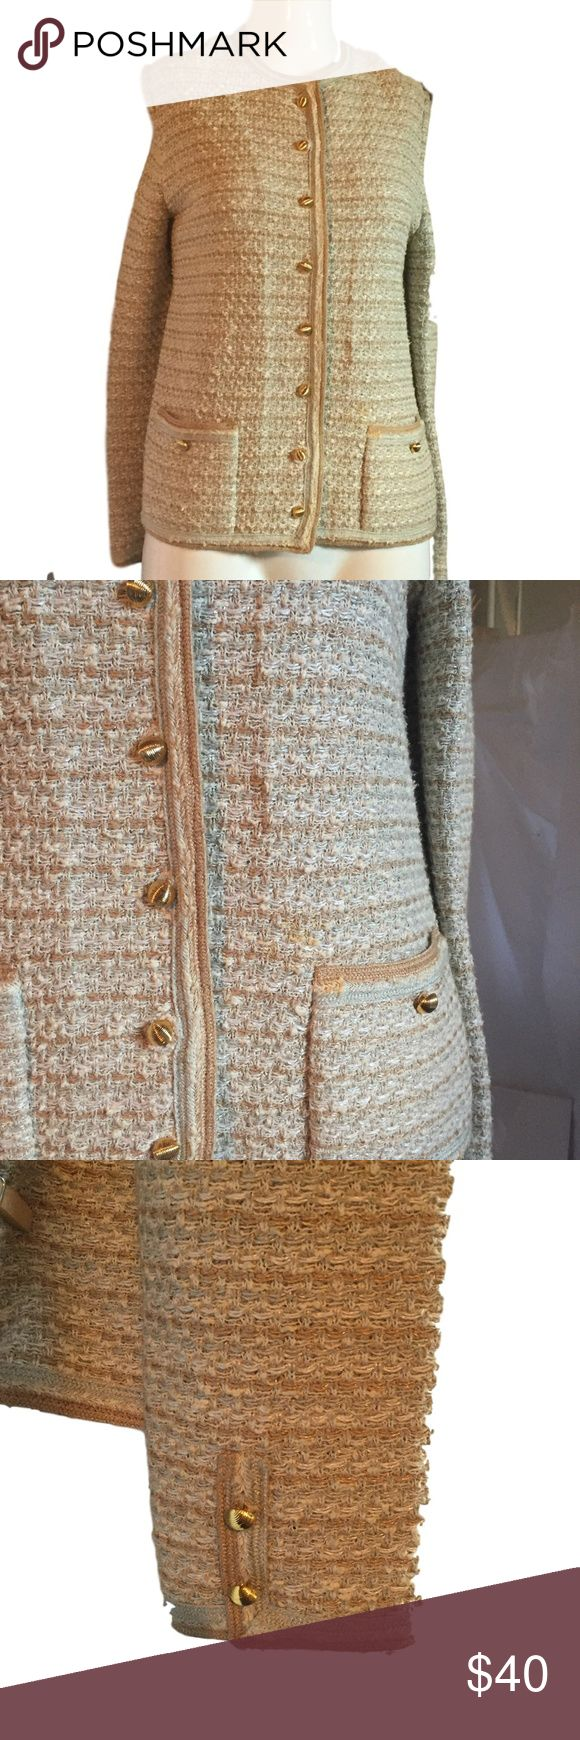 Castleberry Size 12 Gold Silver White VTG Jacket Gold Tweed Jacket  Women's Tweed Jacket  Vintage Tweed Jacket, gold buttons, gold, silver and white woven in the tweed.  Textured Gold Buttons on the front and 2 gold buttons at the sleeve. A beautiful neutral color that will become your go to jacket. It's great for fall and mixing well with the fall colors. And, it's also perfect for spring and summer style. The white, gold, silver colors mix well with spring and summer outfits, too…